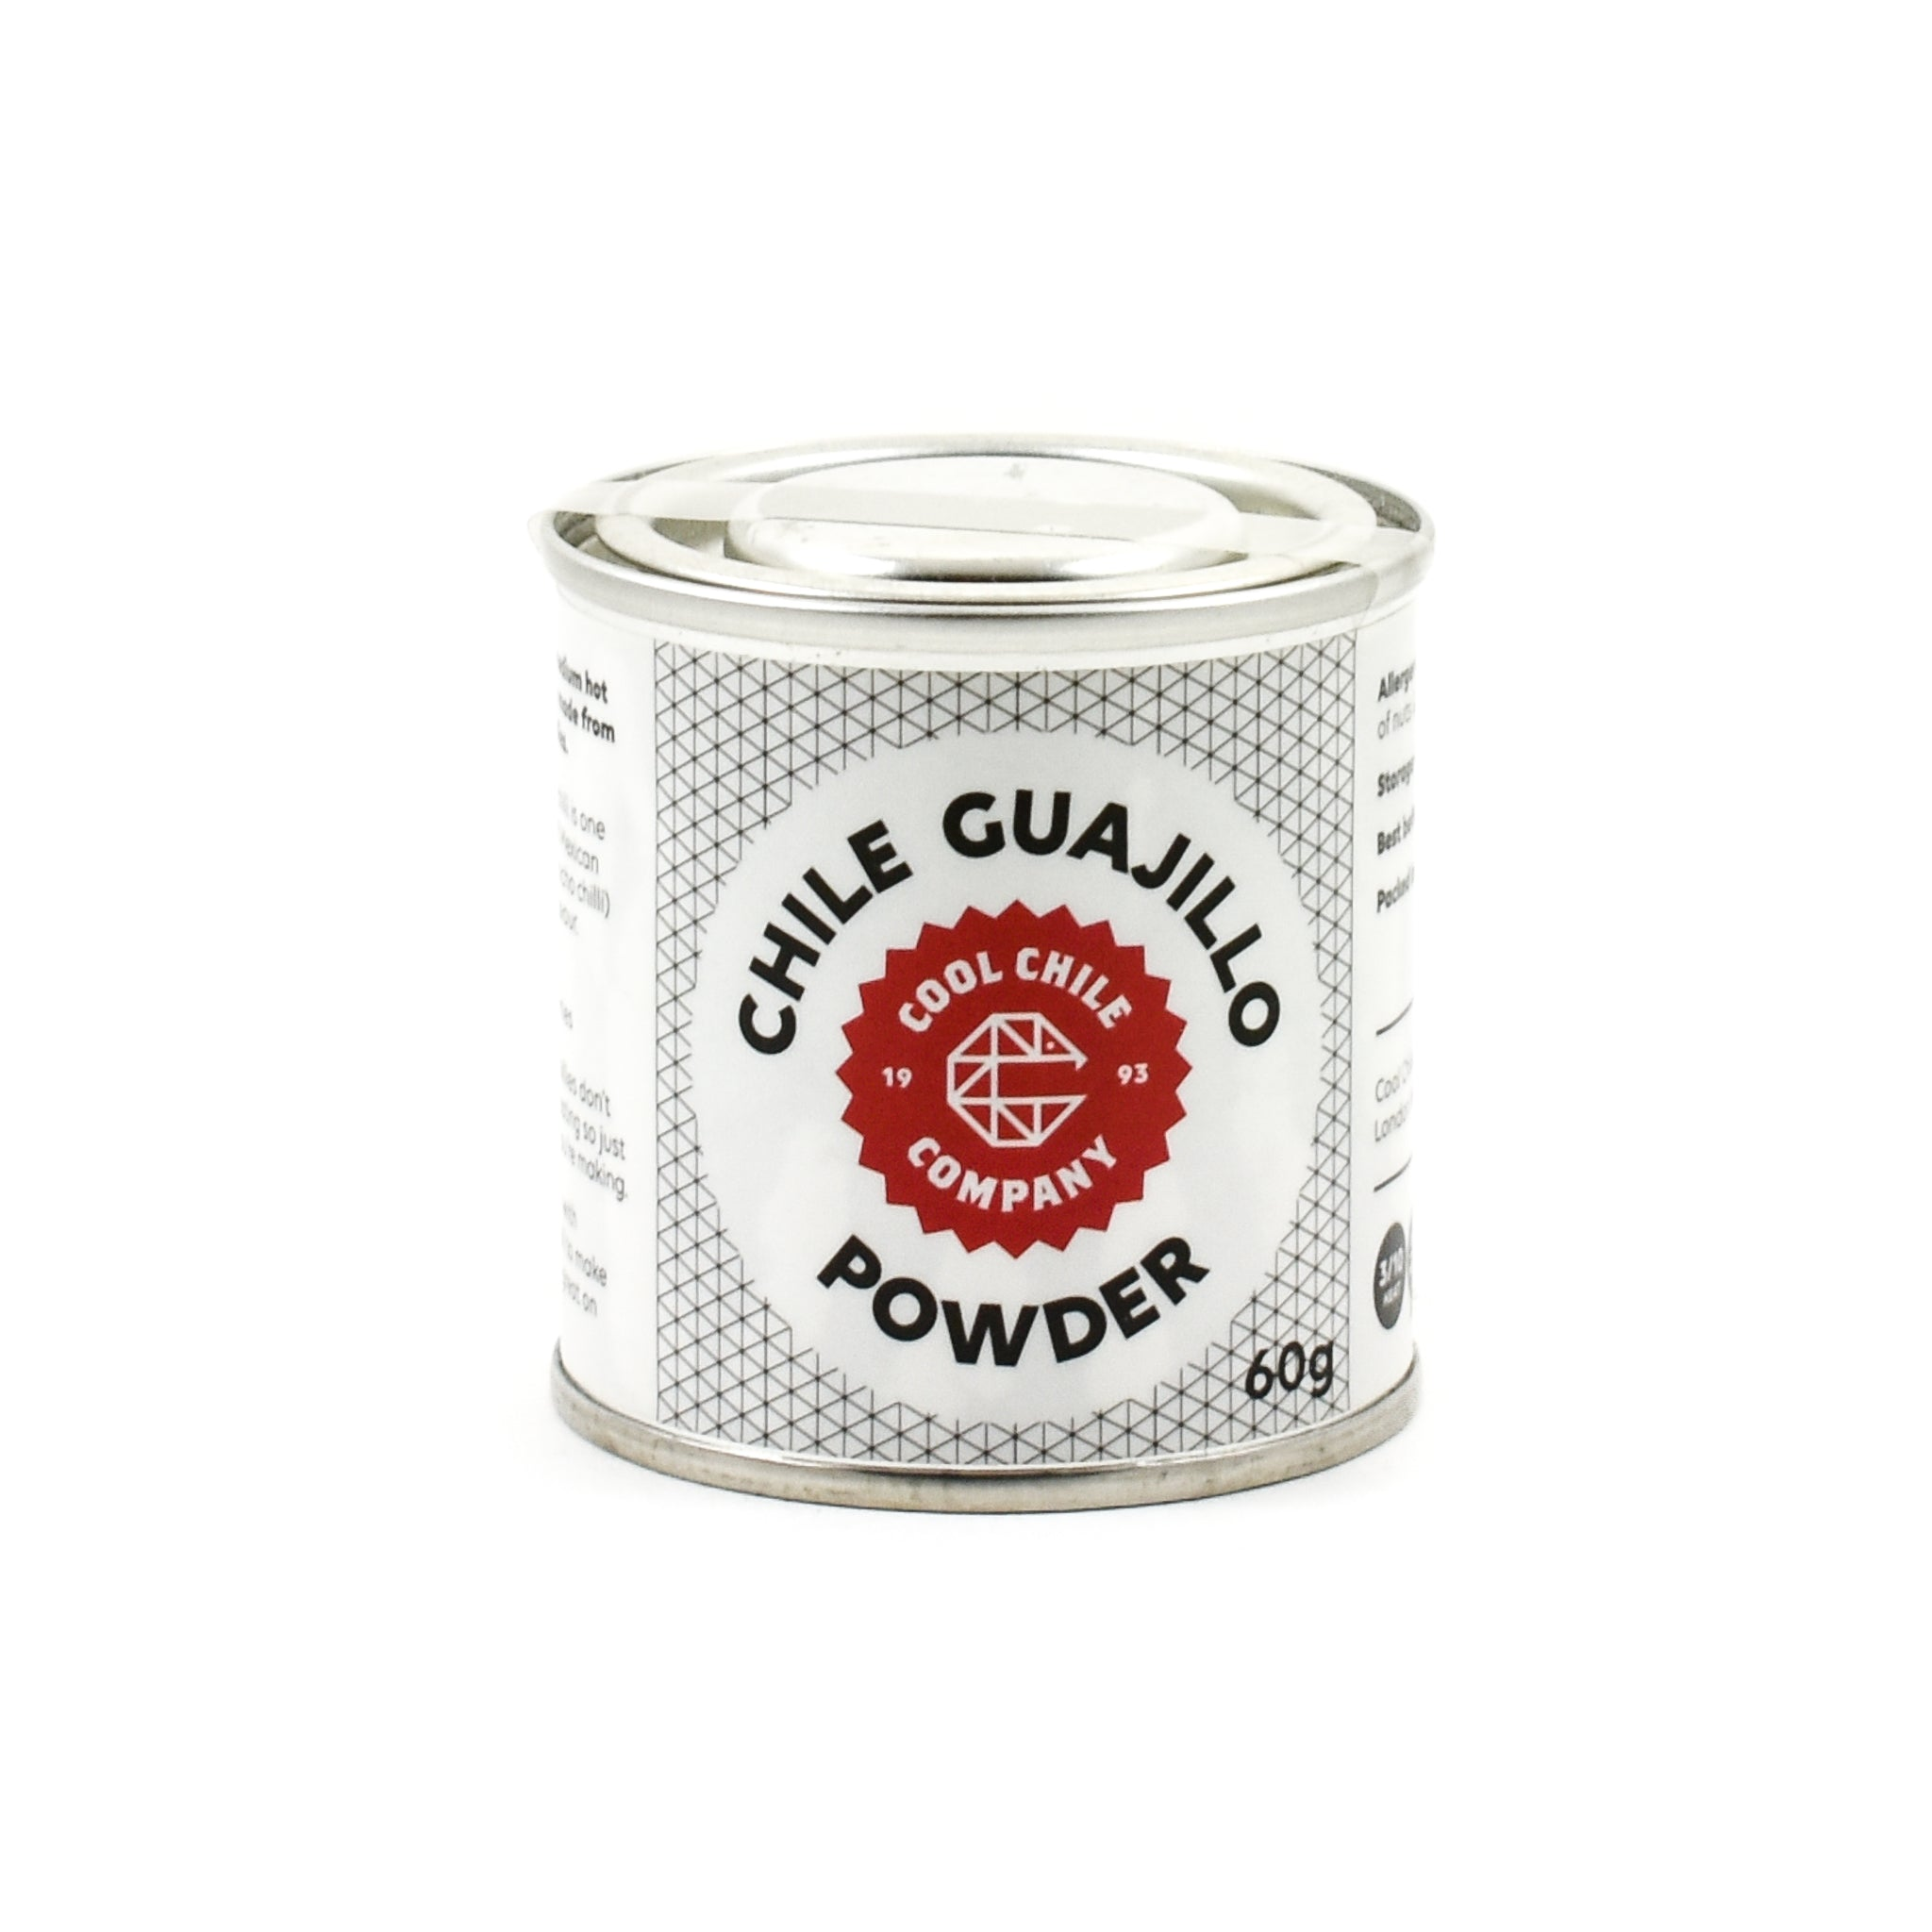 Cool Chile Co Guajillo Powder 60g Ingredients Herbs & Spices Dried Chillies Mexican Food